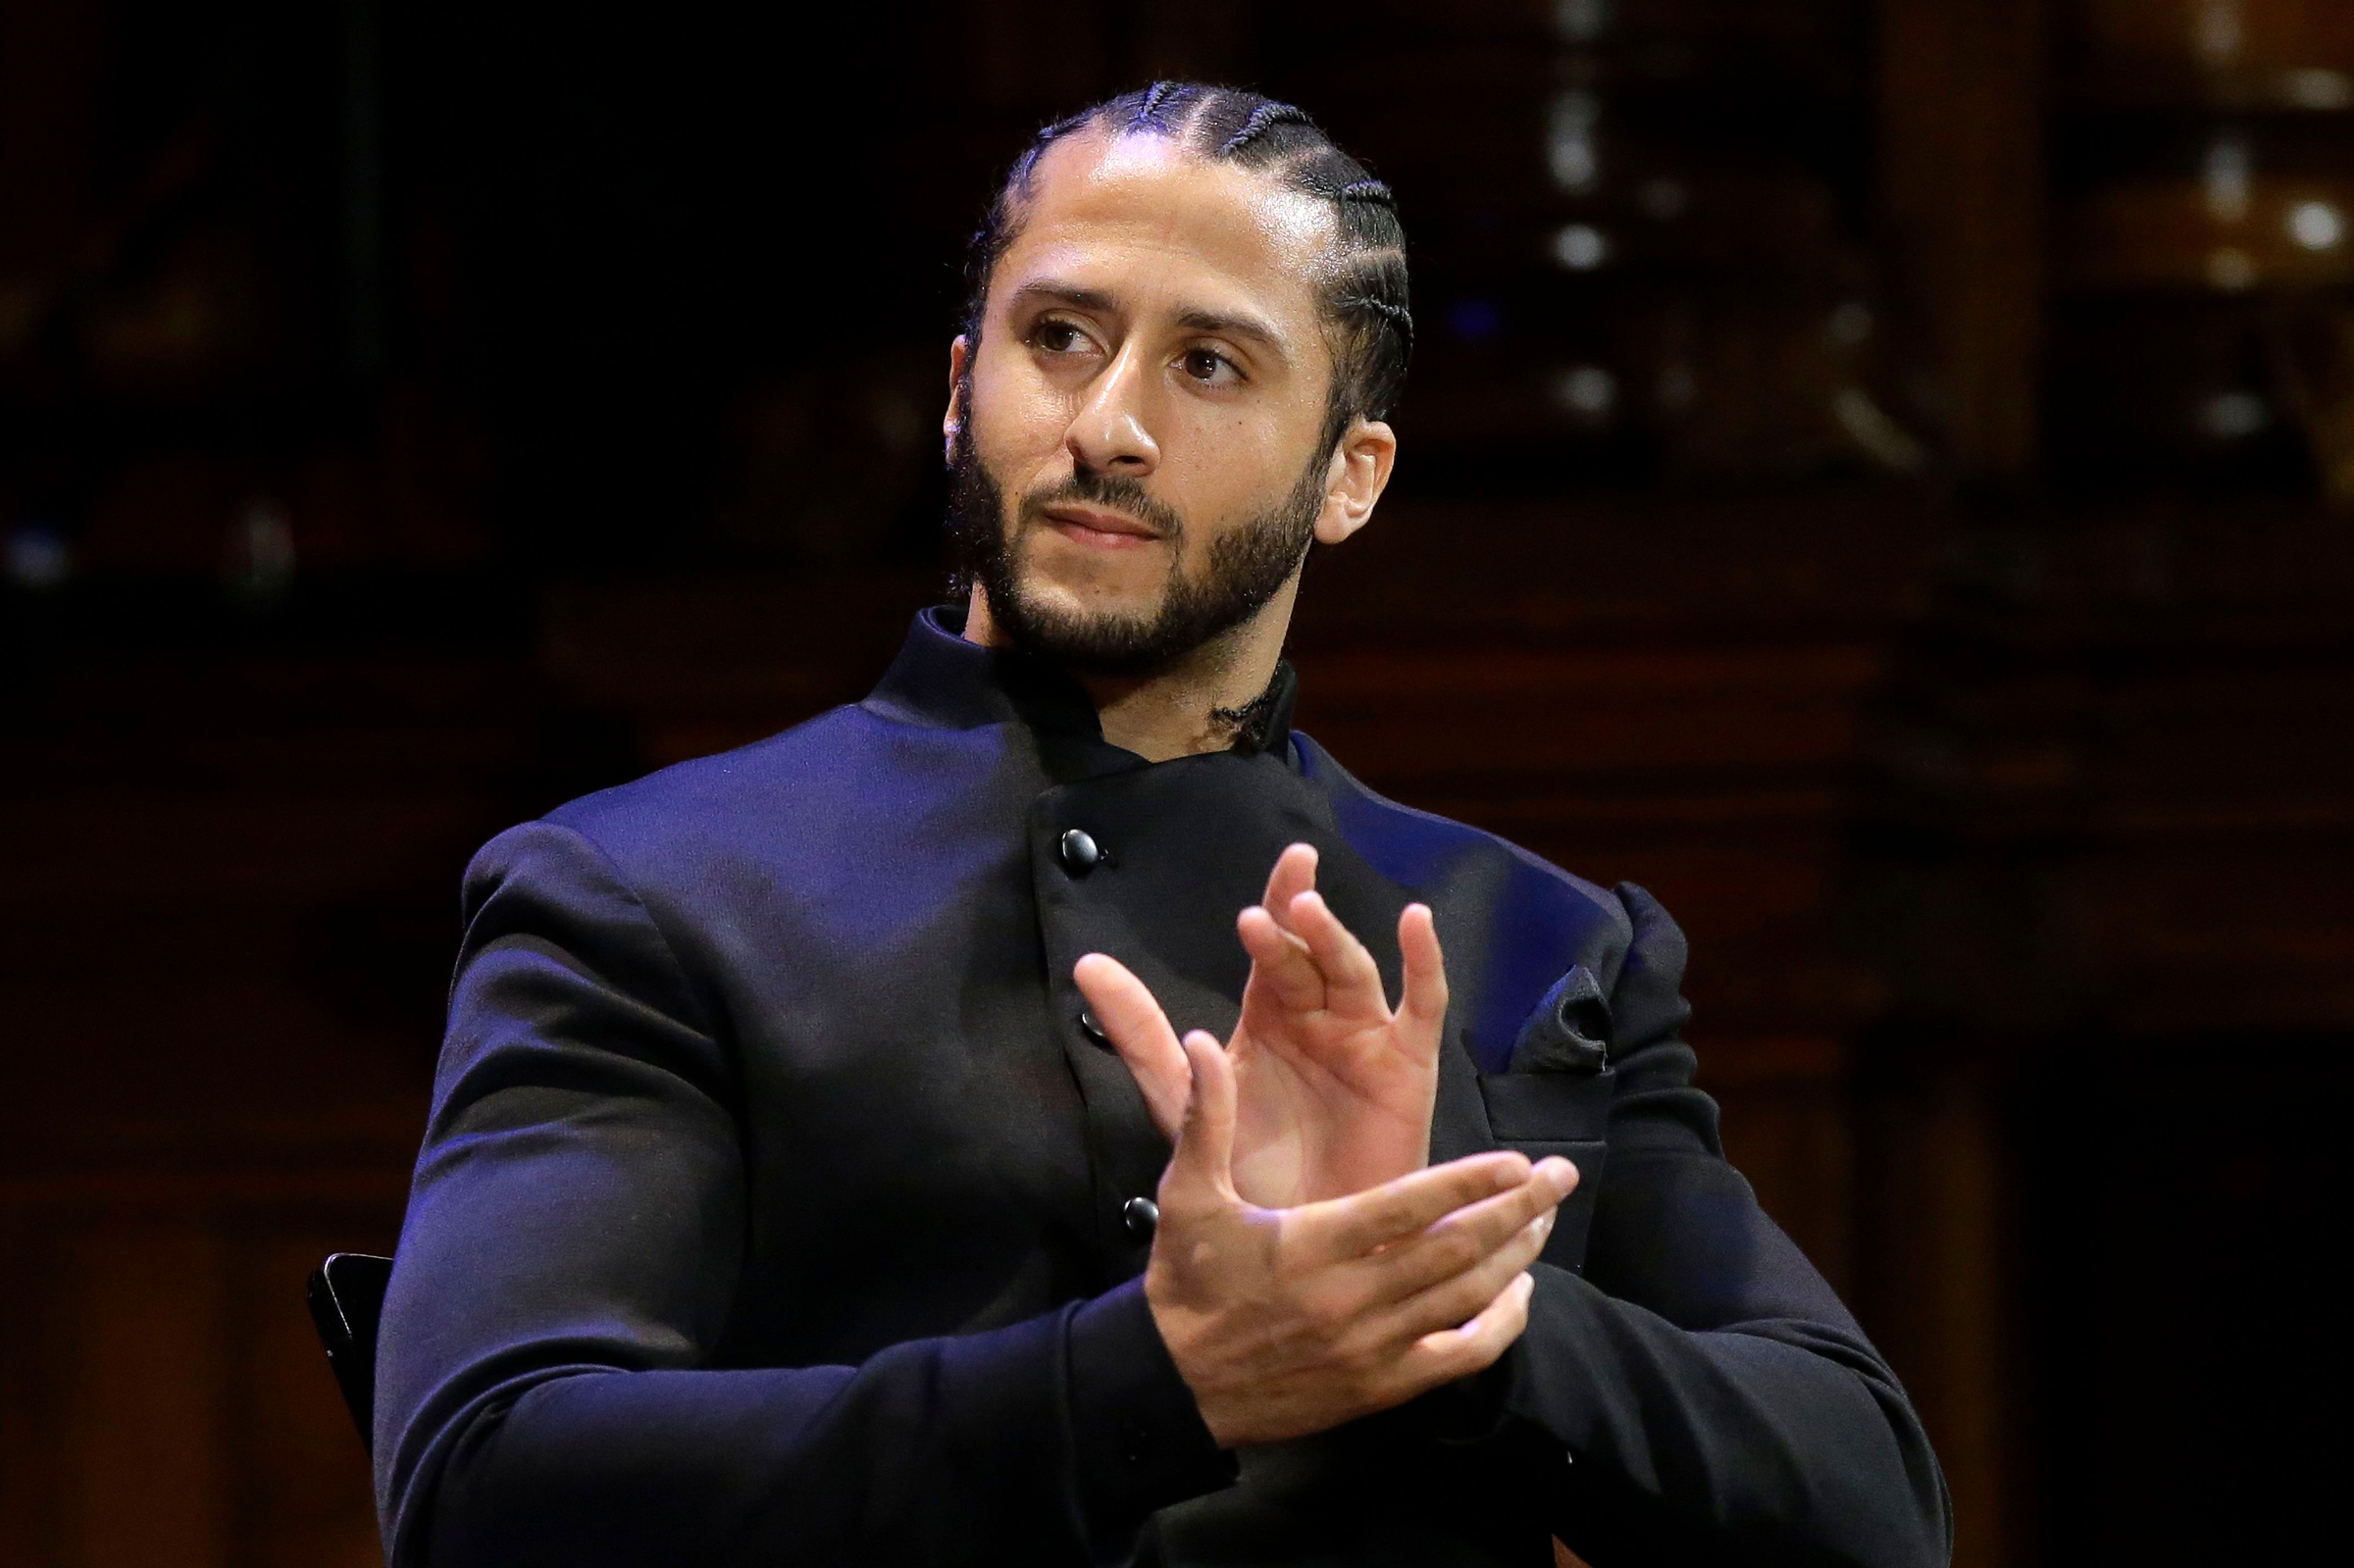 5a844b4cc2b Former NFL football quarterback Colin Kaepernick applauds while seated on  stage during W.E.B. Du Bois Medal